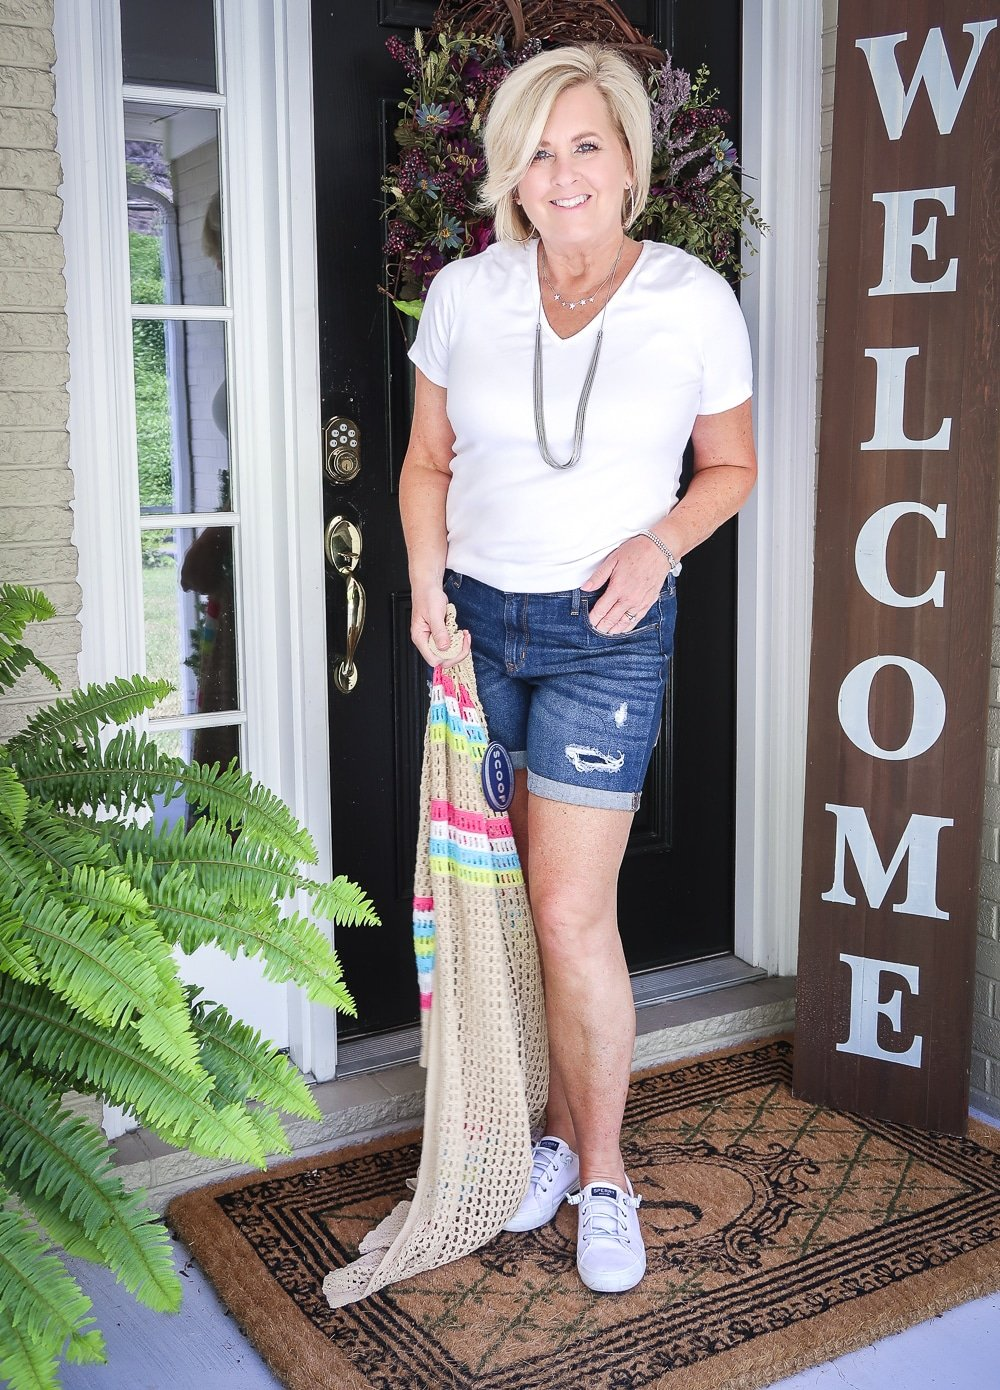 Fashion Blogger 50 Is Not Old is wearing a white v neck t-shirt, distressed jean shorts, holding an open knit long cardigan with Sperry no-tie sneakers